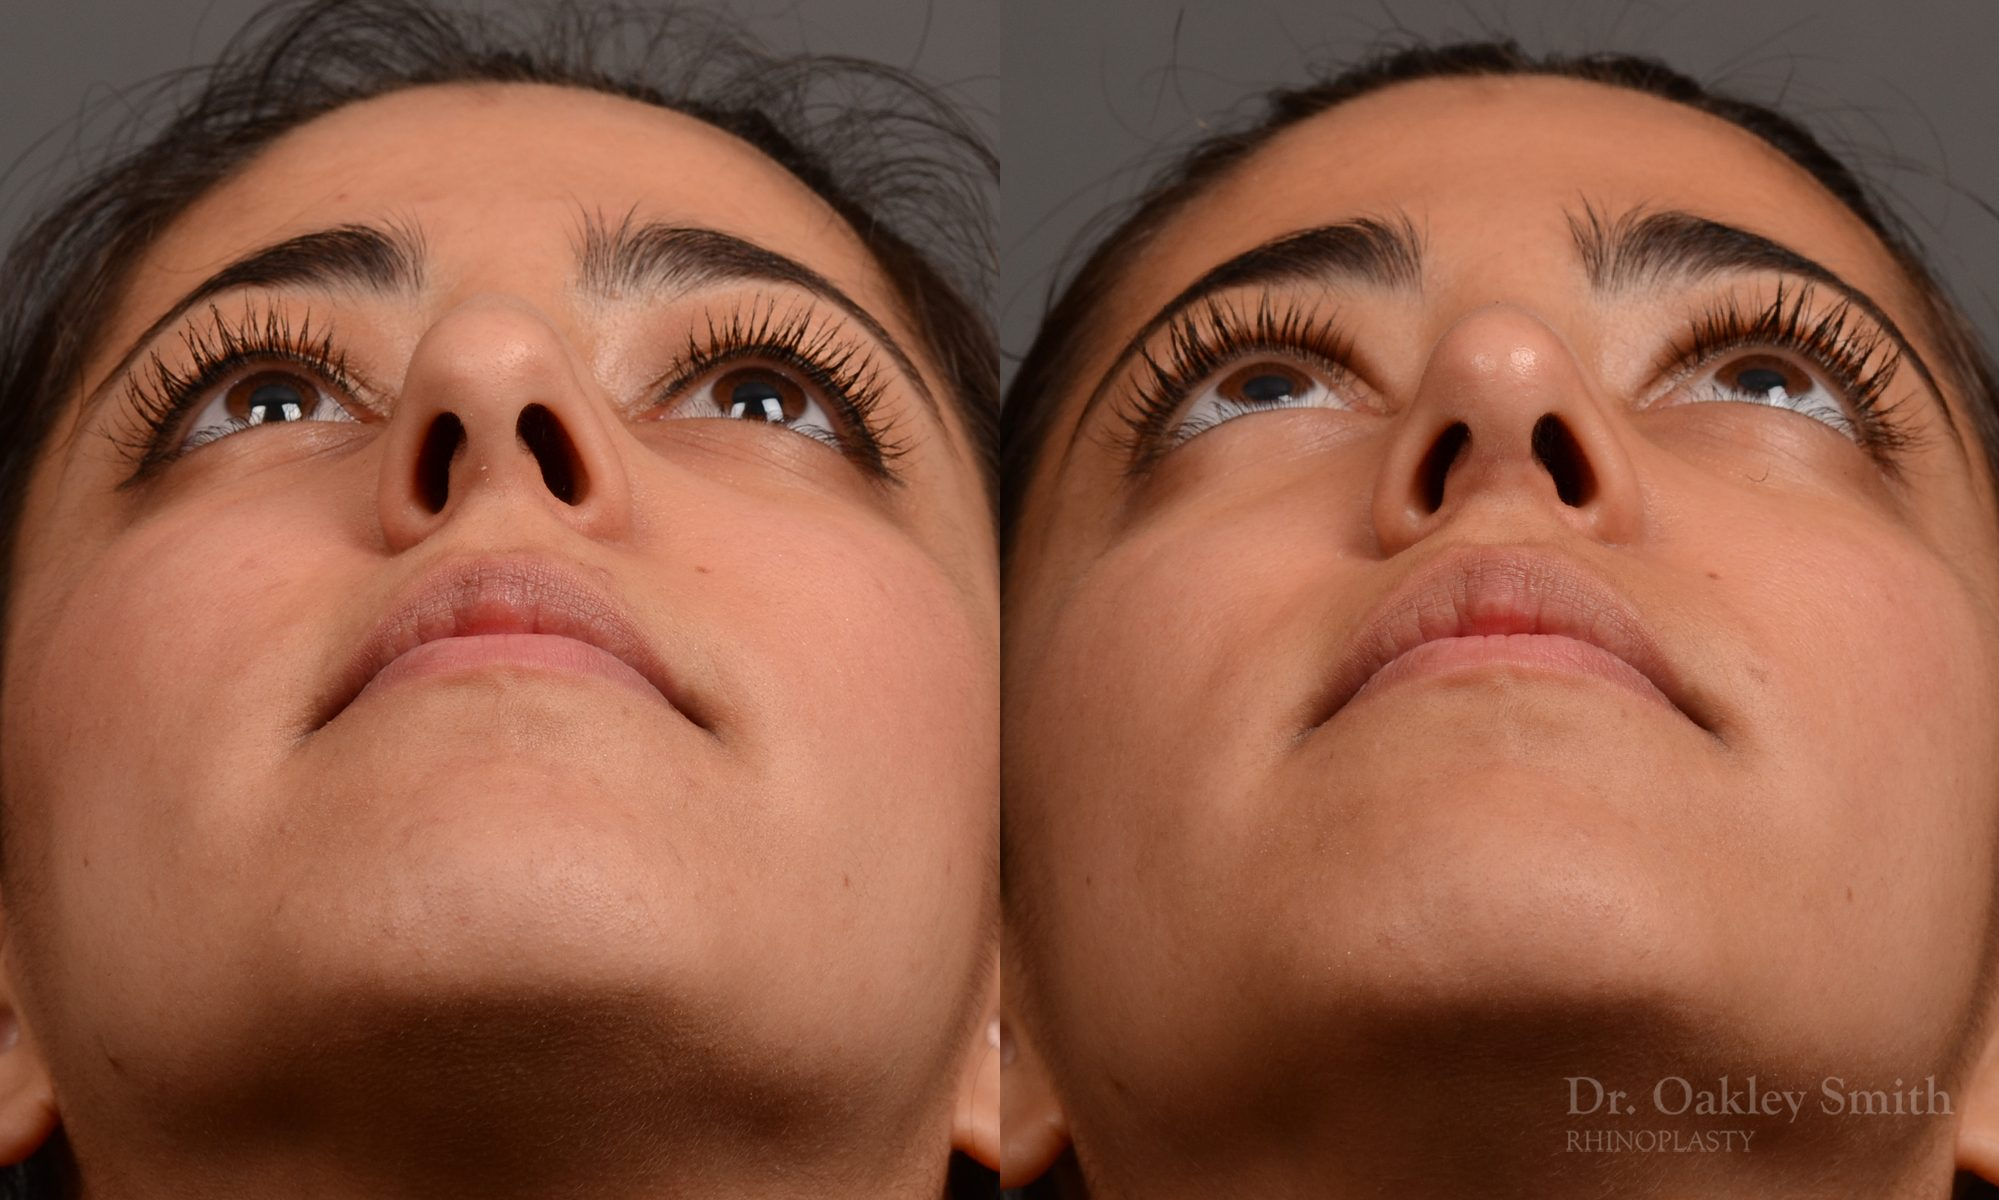 Female rhinoplasty surgery